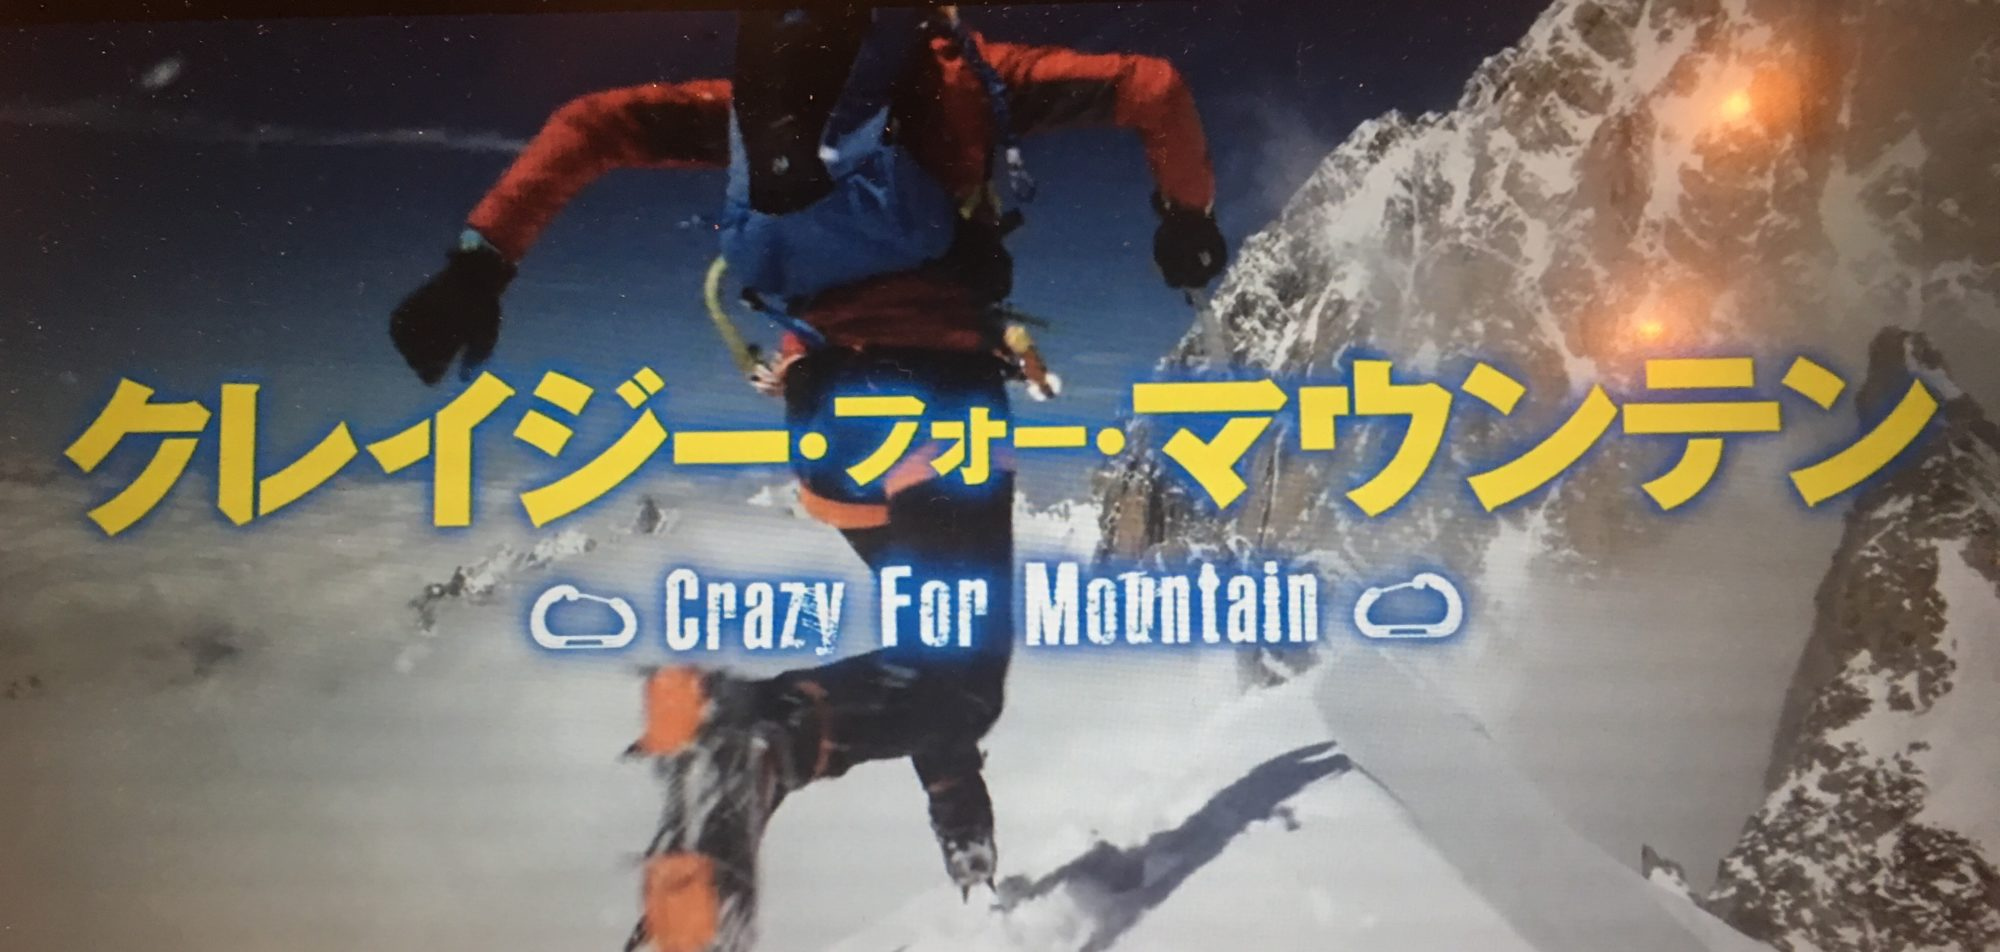 Crazy forMountain